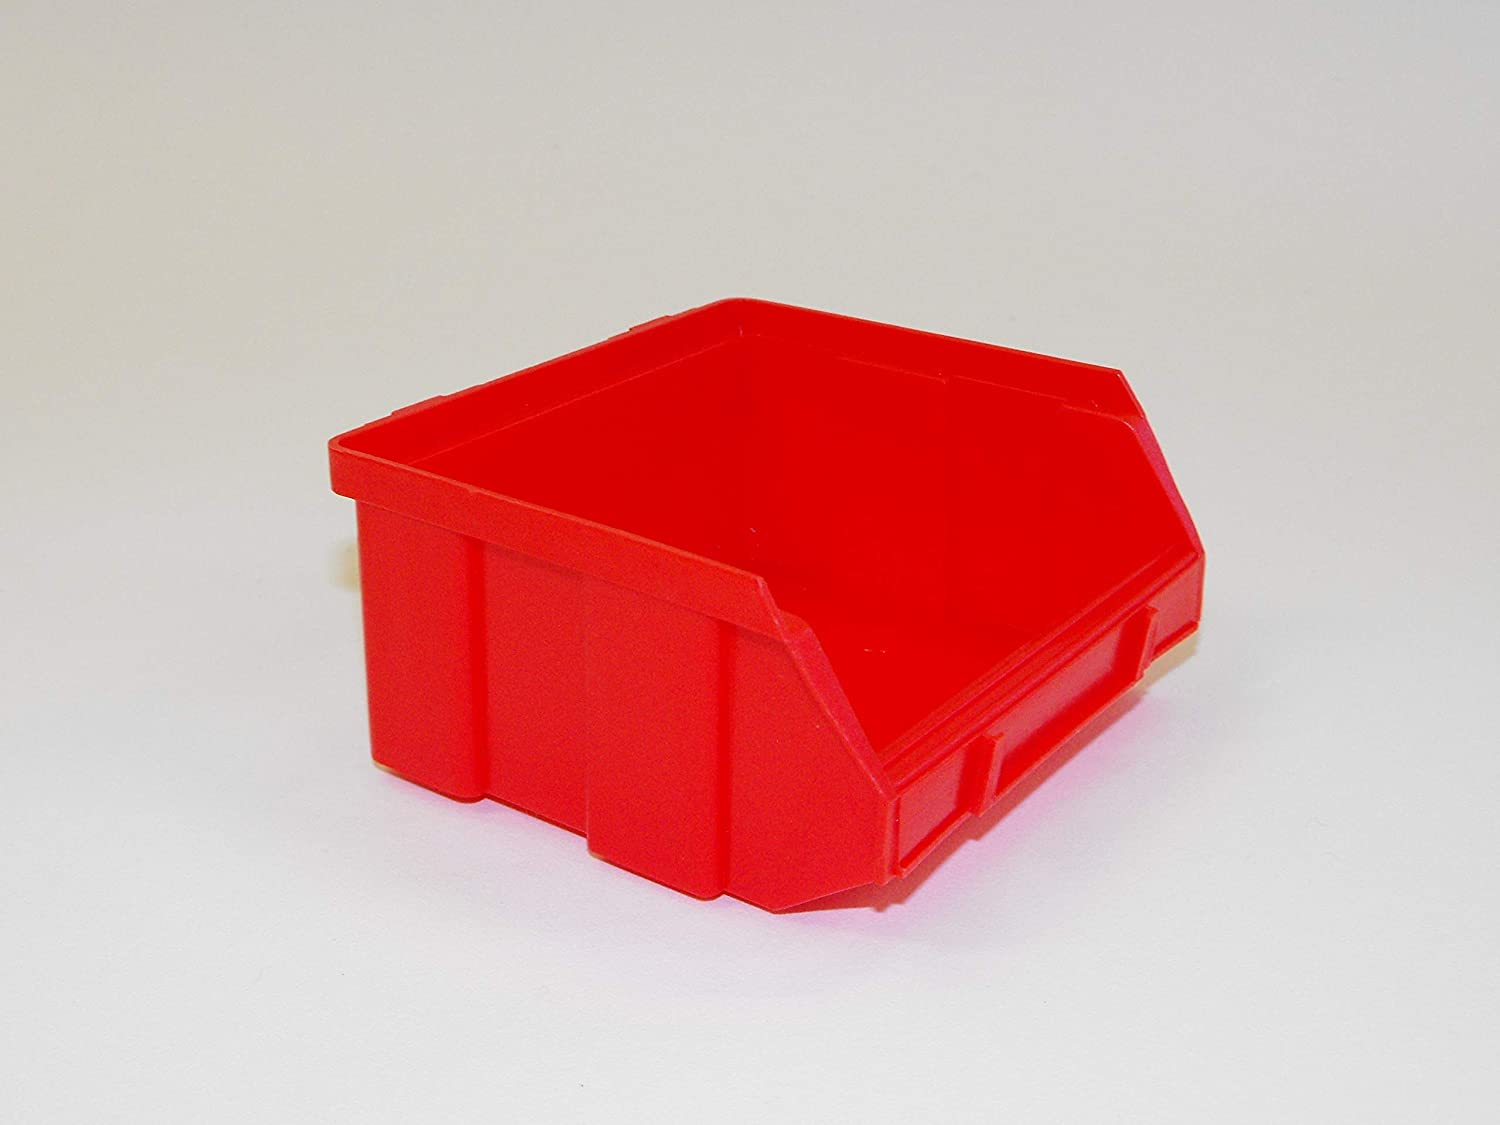 1 Harbor Freight Wall Mount Hanging Storage Bin Replacement Red Small Bin Plastic